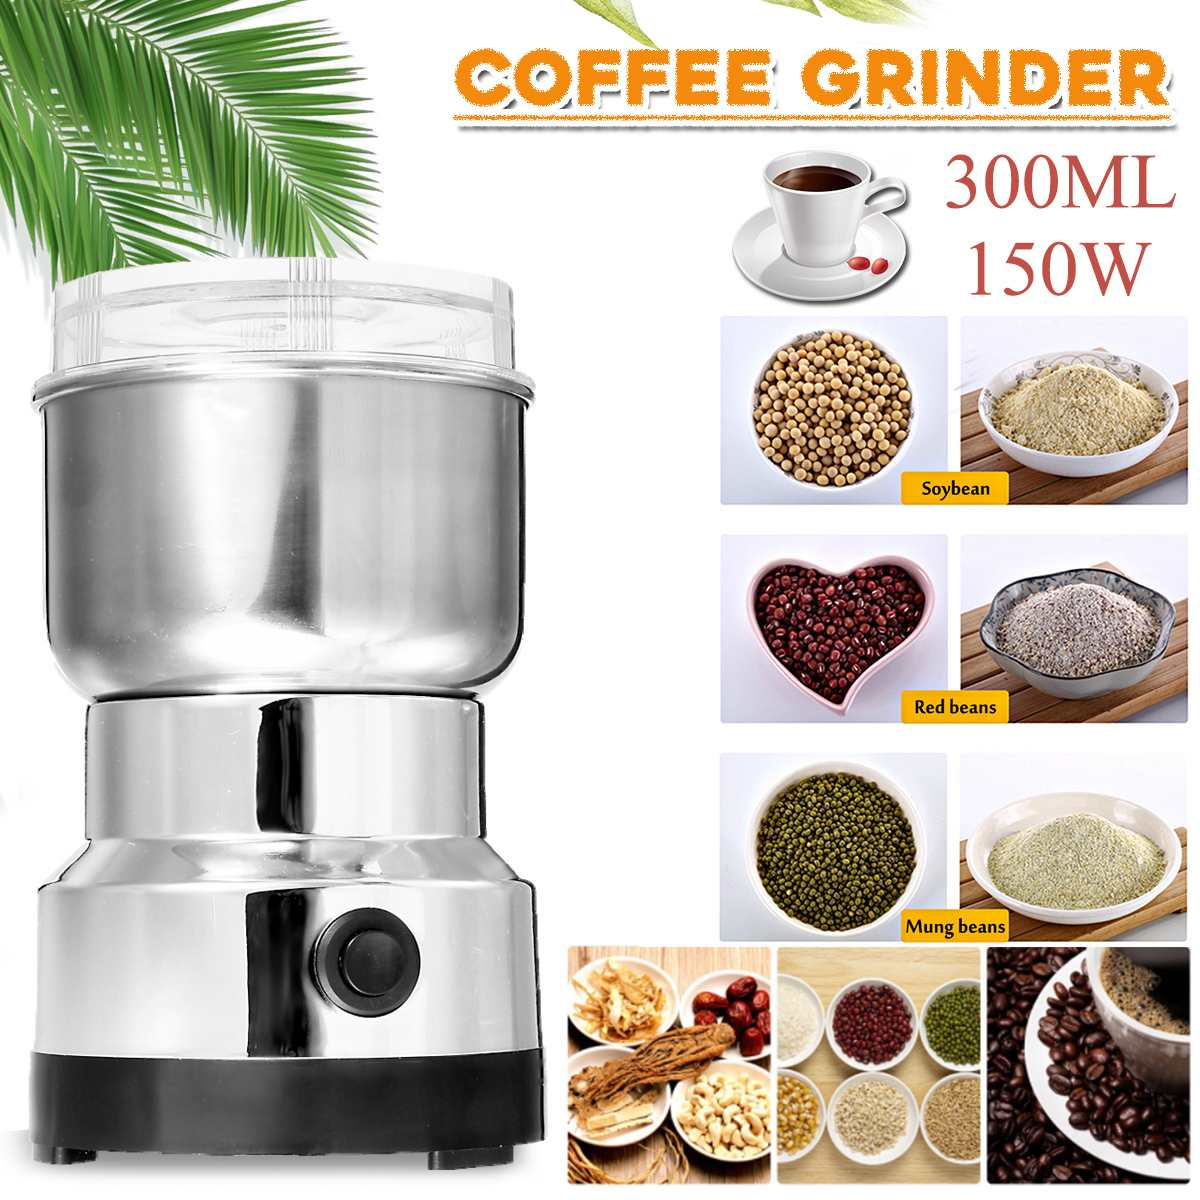 Electric Coffee Machine Bean Grinder Blenders 150W 300ml For Home Kitchen Office Stainless Steel 220V For Grains Spices Hebals